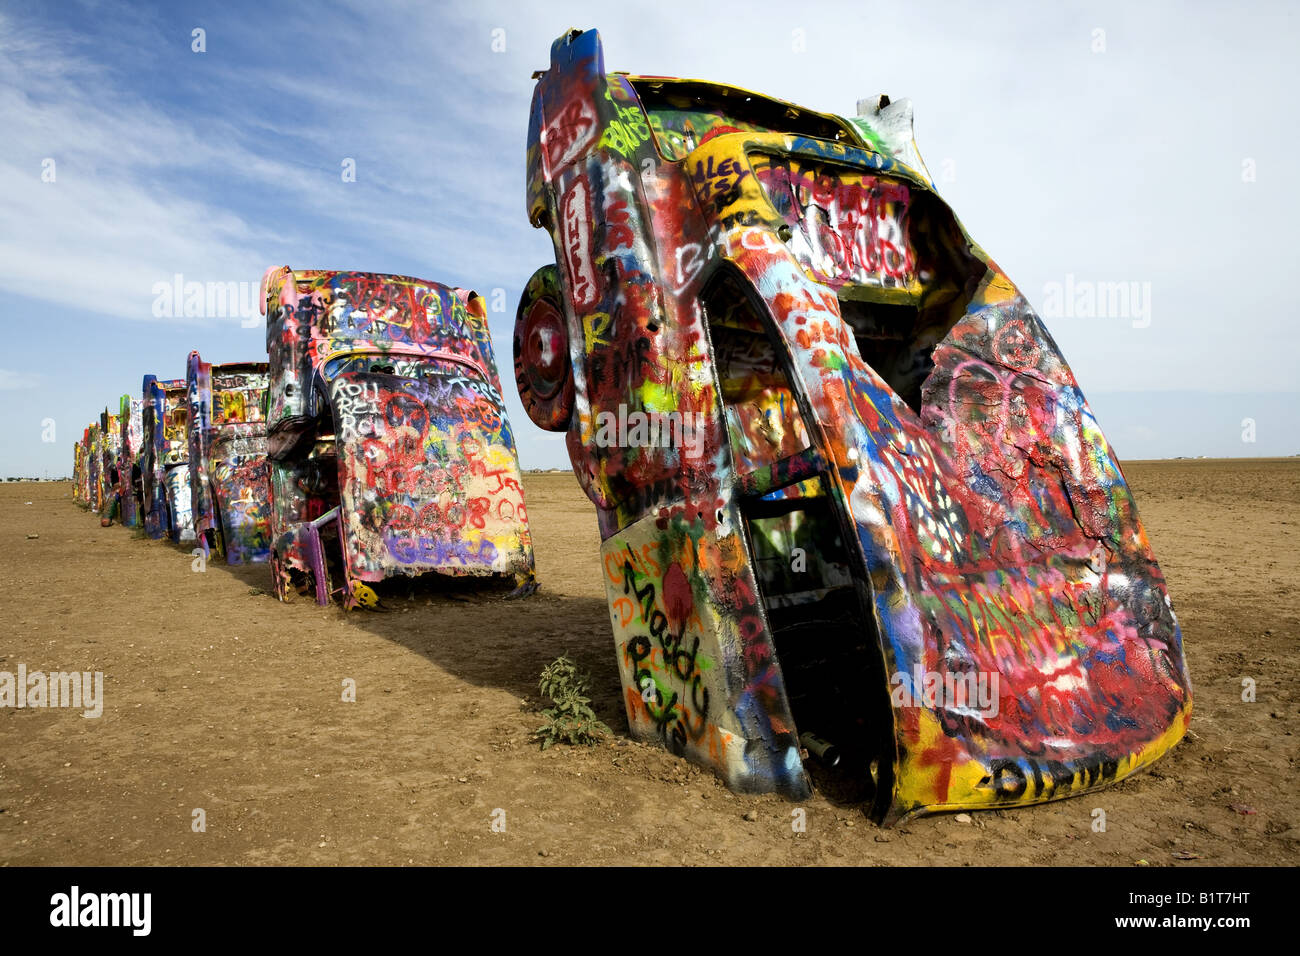 USA Amarillo Texas Cadillac Ranch a public art installation and sculpture was created in 1974 - Stock Image